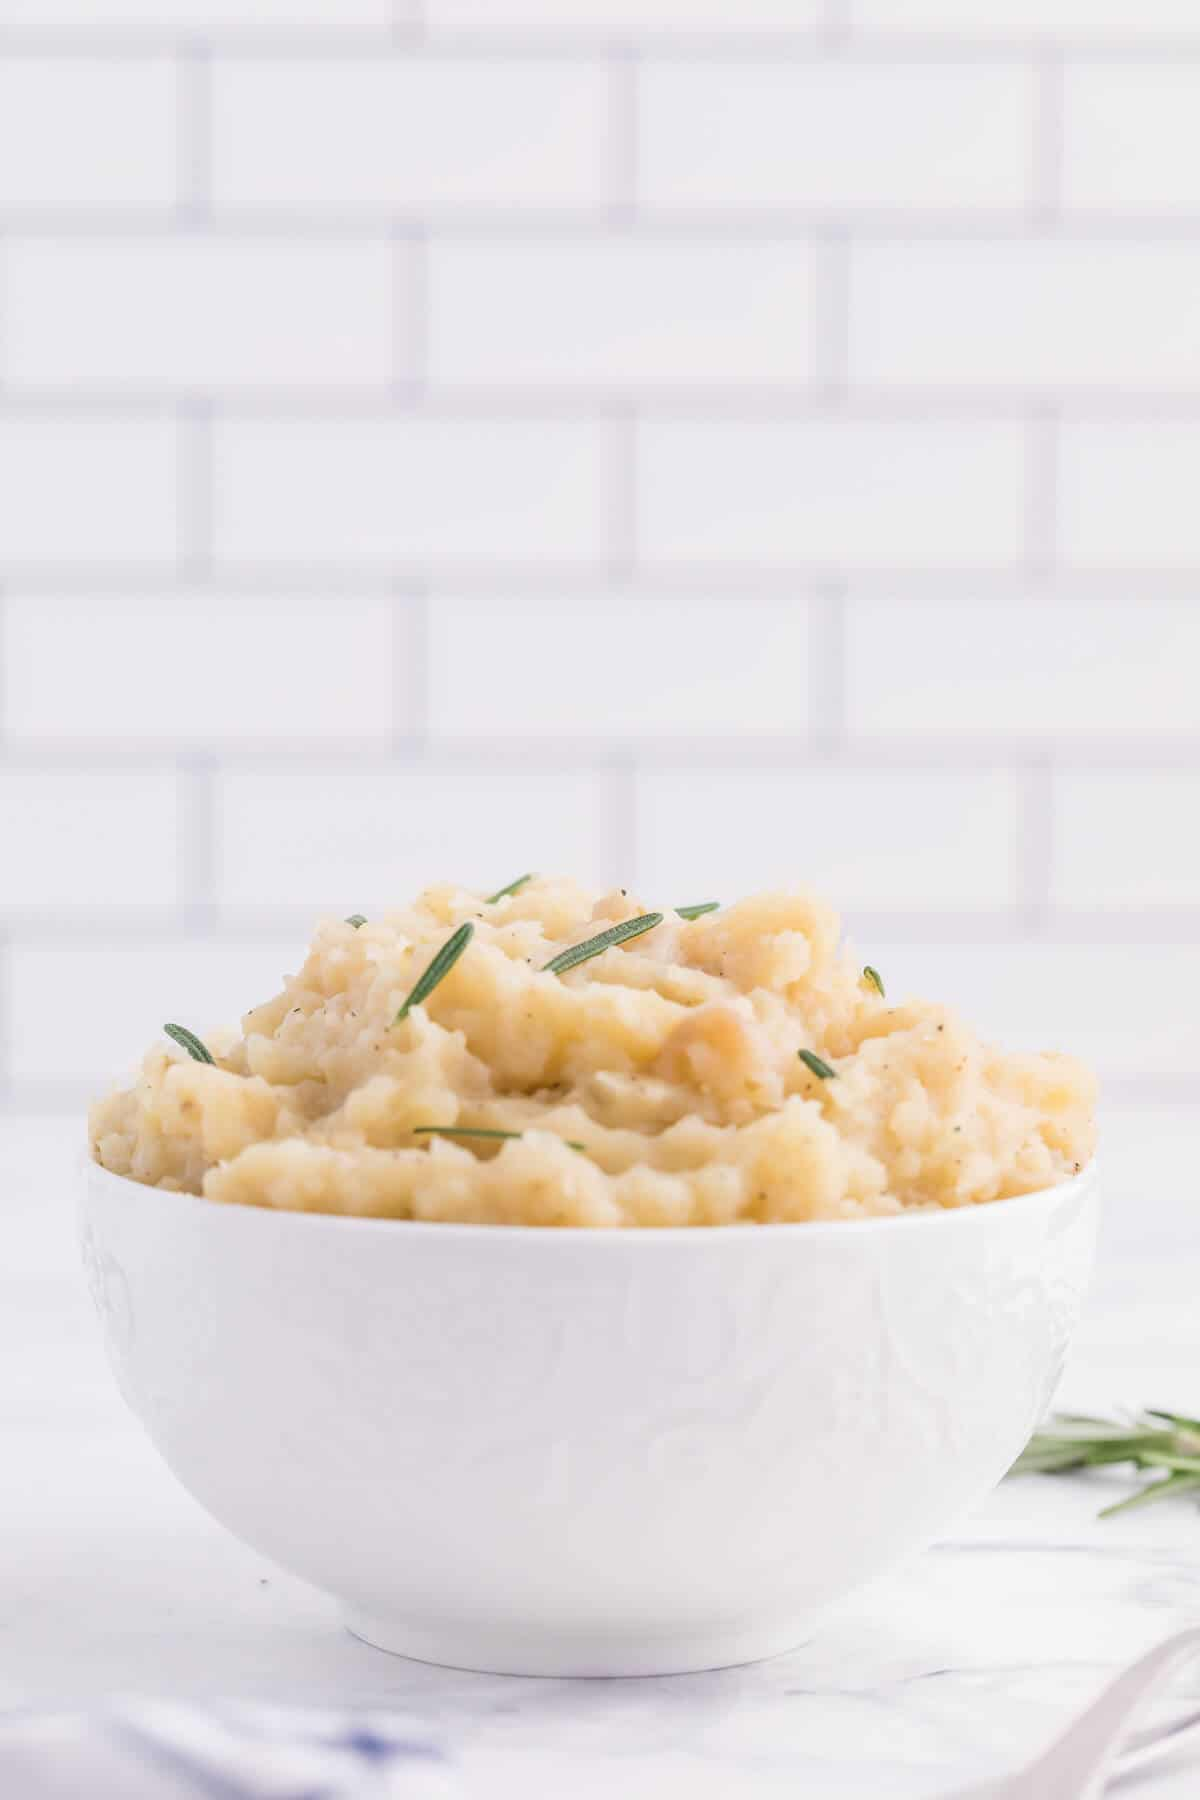 Slow Cooker Rosemary Garlic Mashed Potatoes - Make the creamiest mashed potatoes in your Crockpot! You'll love the rich, garlicky flavor in every bite for a delicious fall side dish.